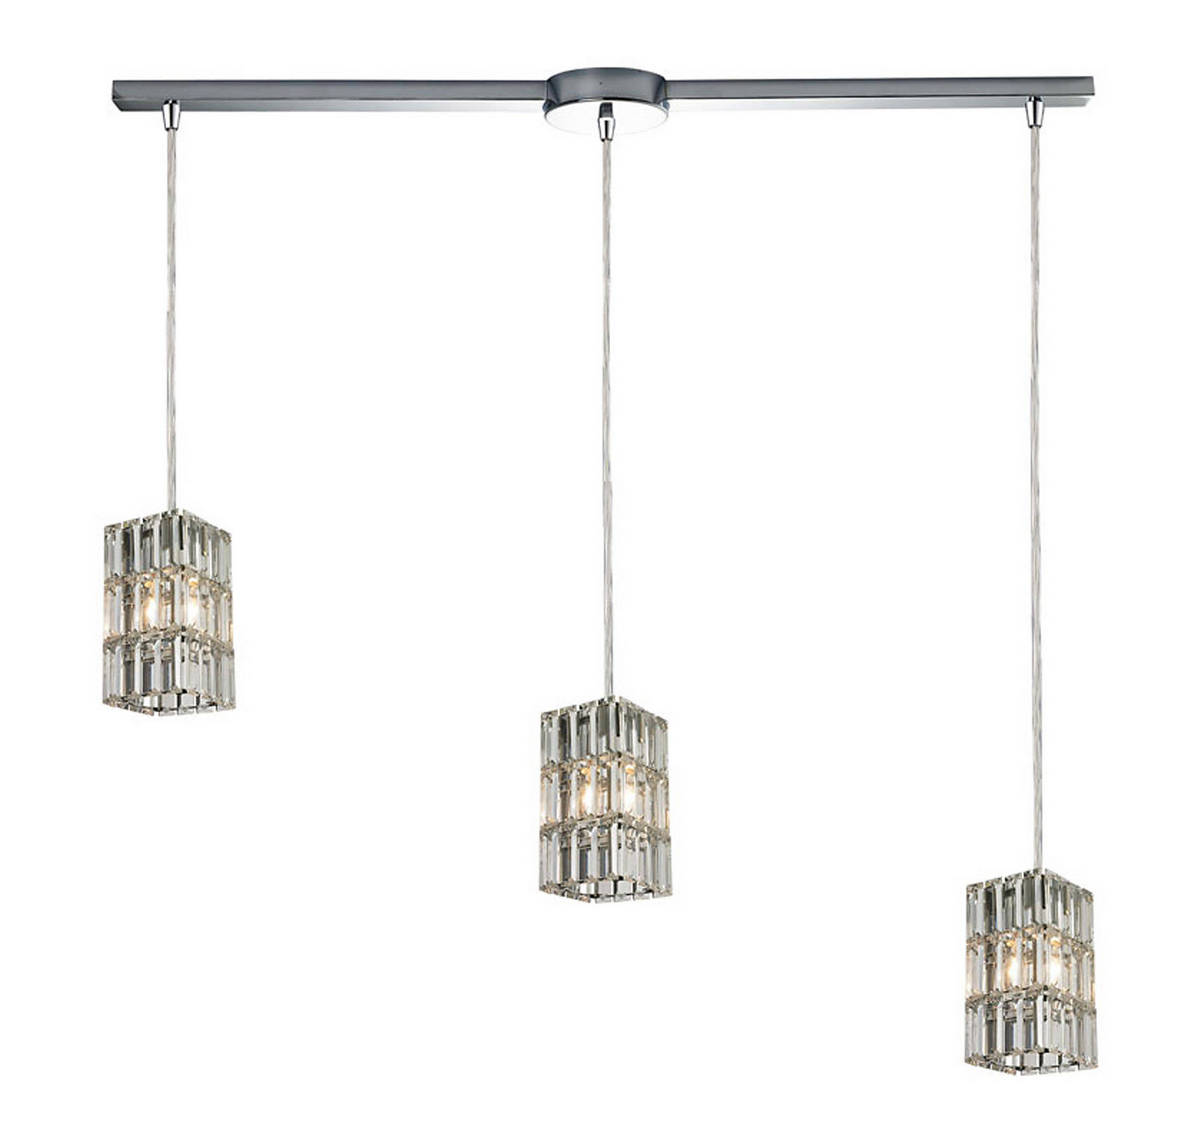 Elk Cynthia 3-Light Linear Square Pendant in Polished Chrome